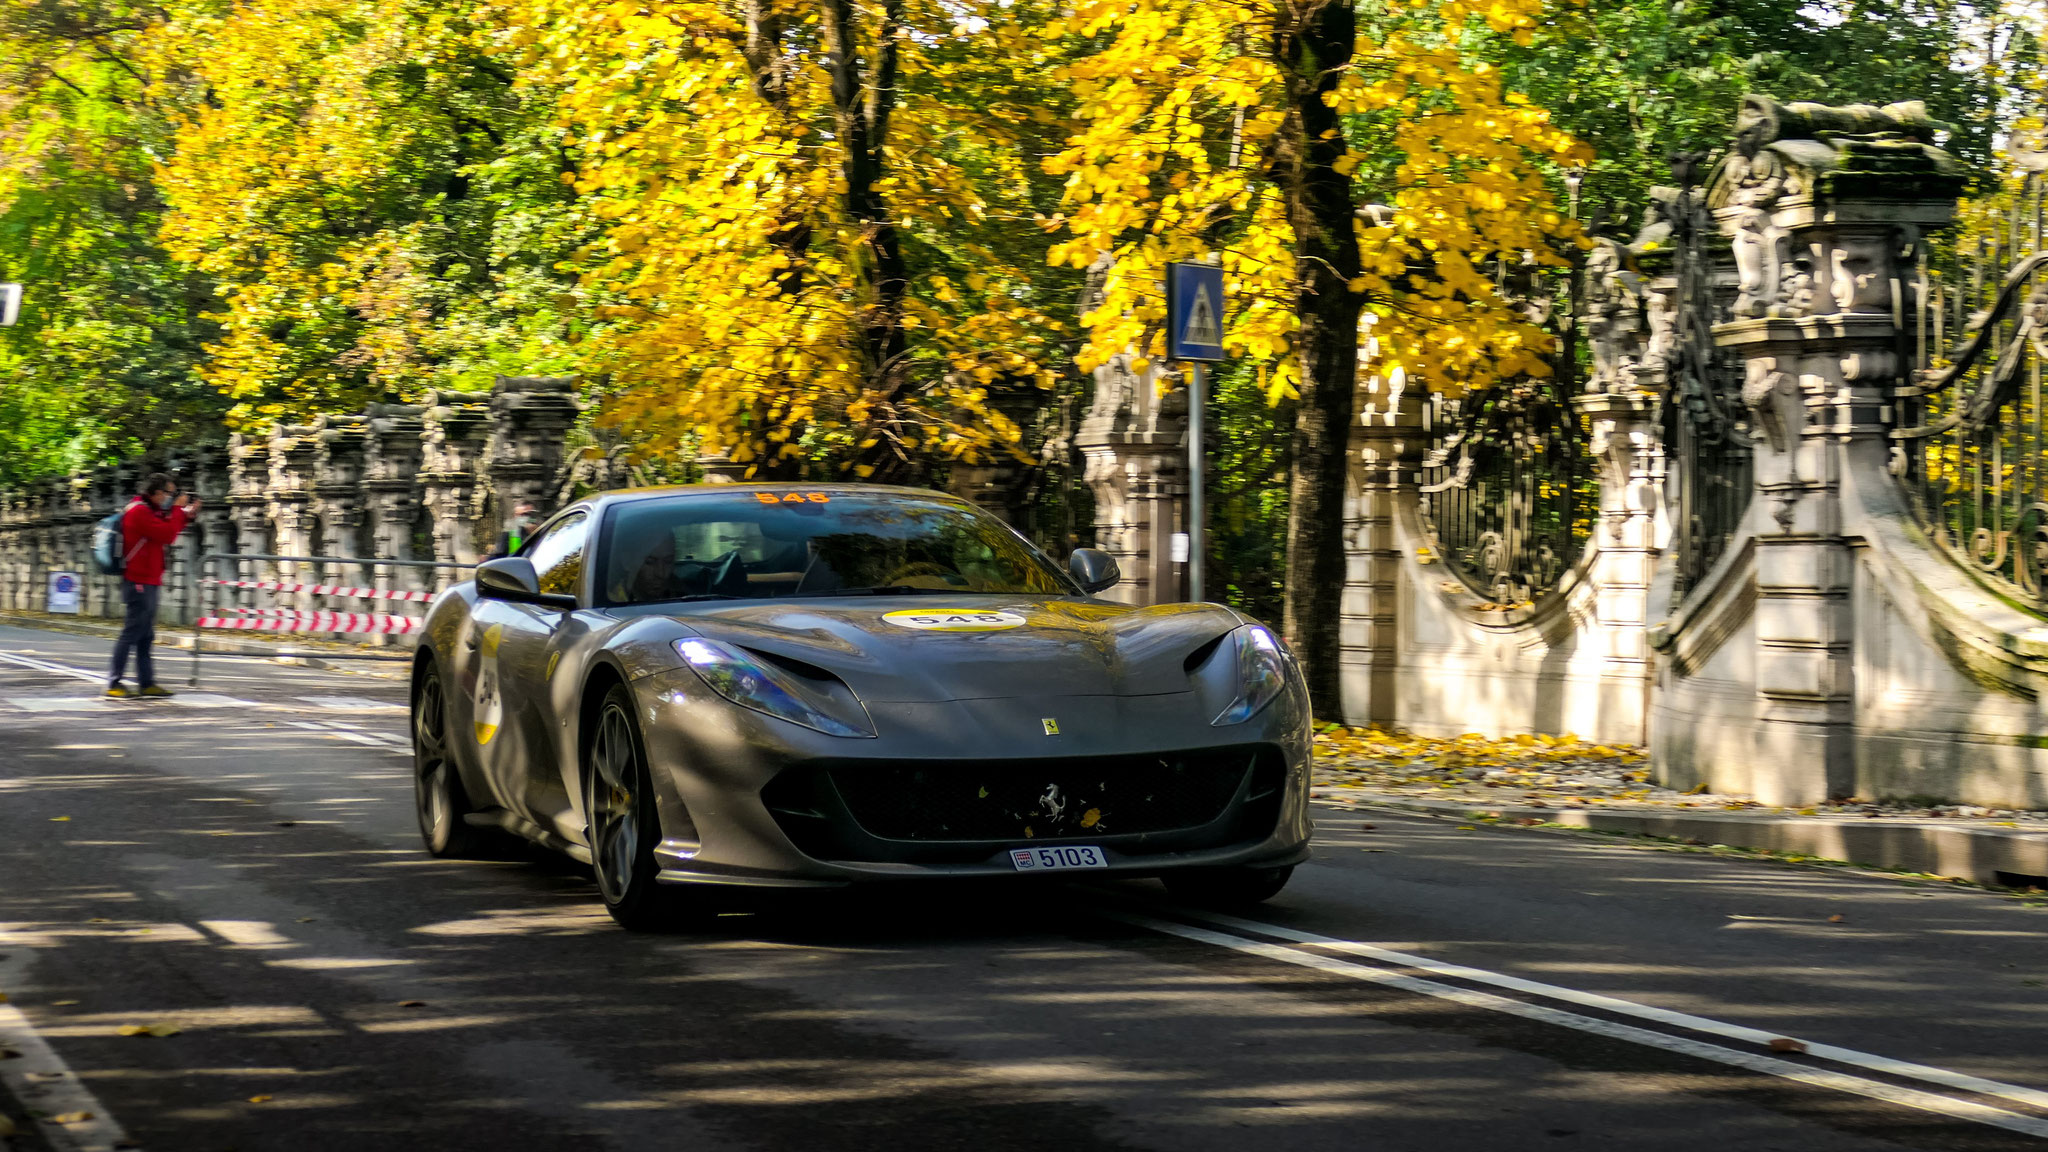 Ferrari 812 Superfast - 5103 (MC)